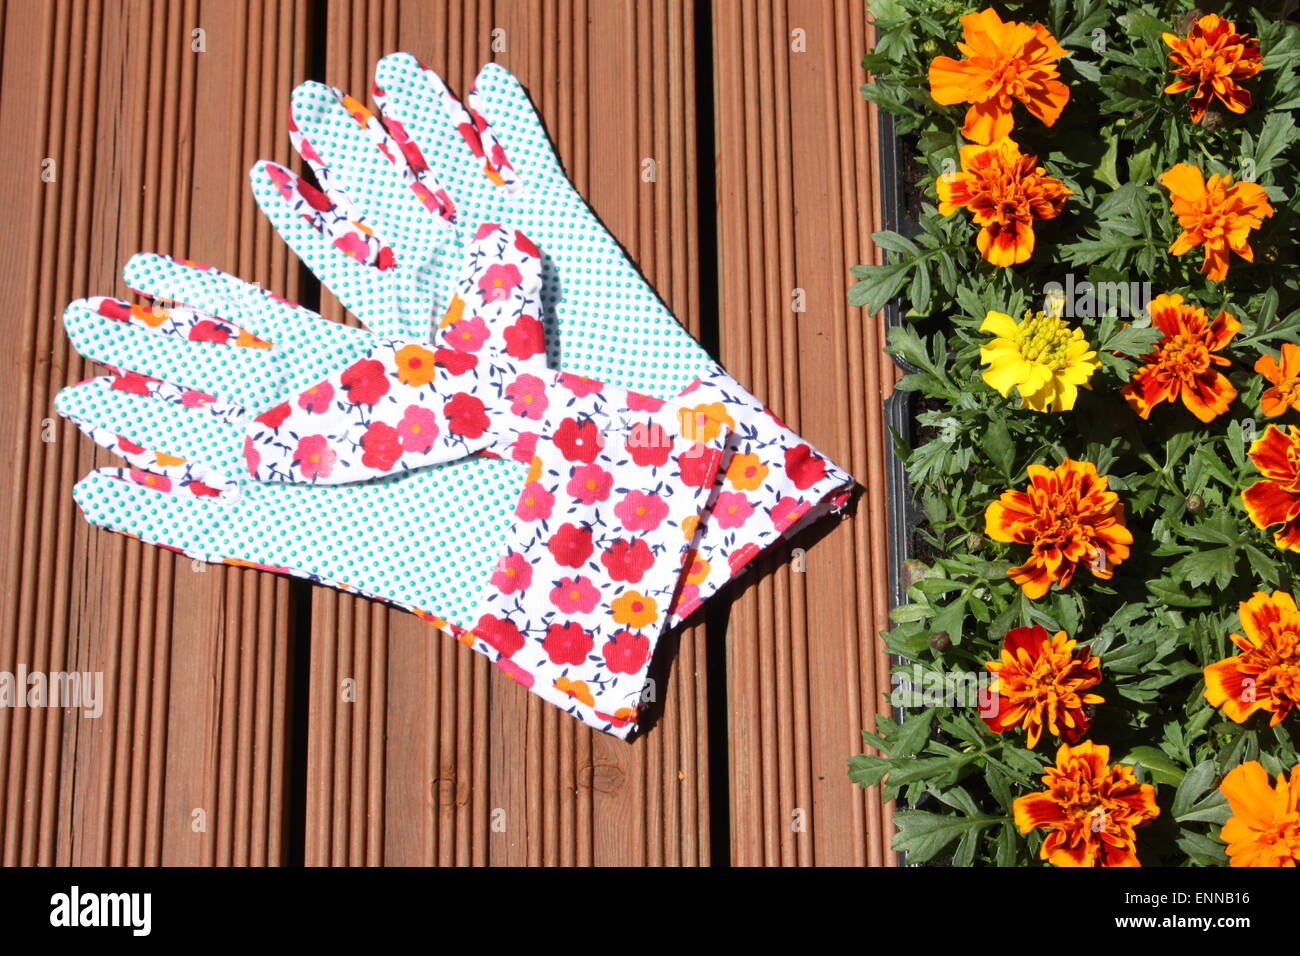 marigold plants with gloves ENNB16